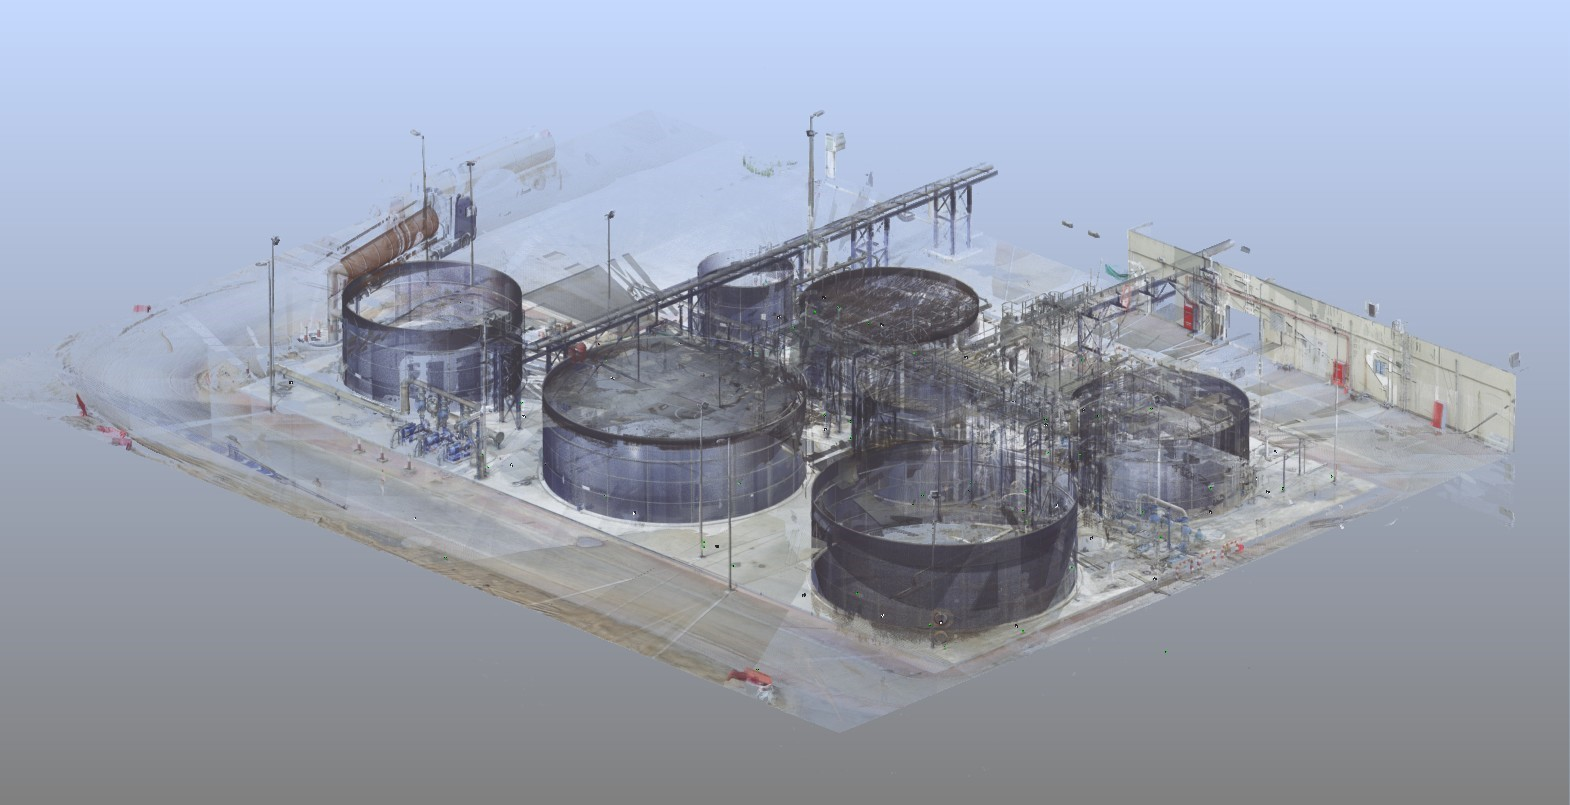 Point cloud of the plant created/registered in Faro Scene software